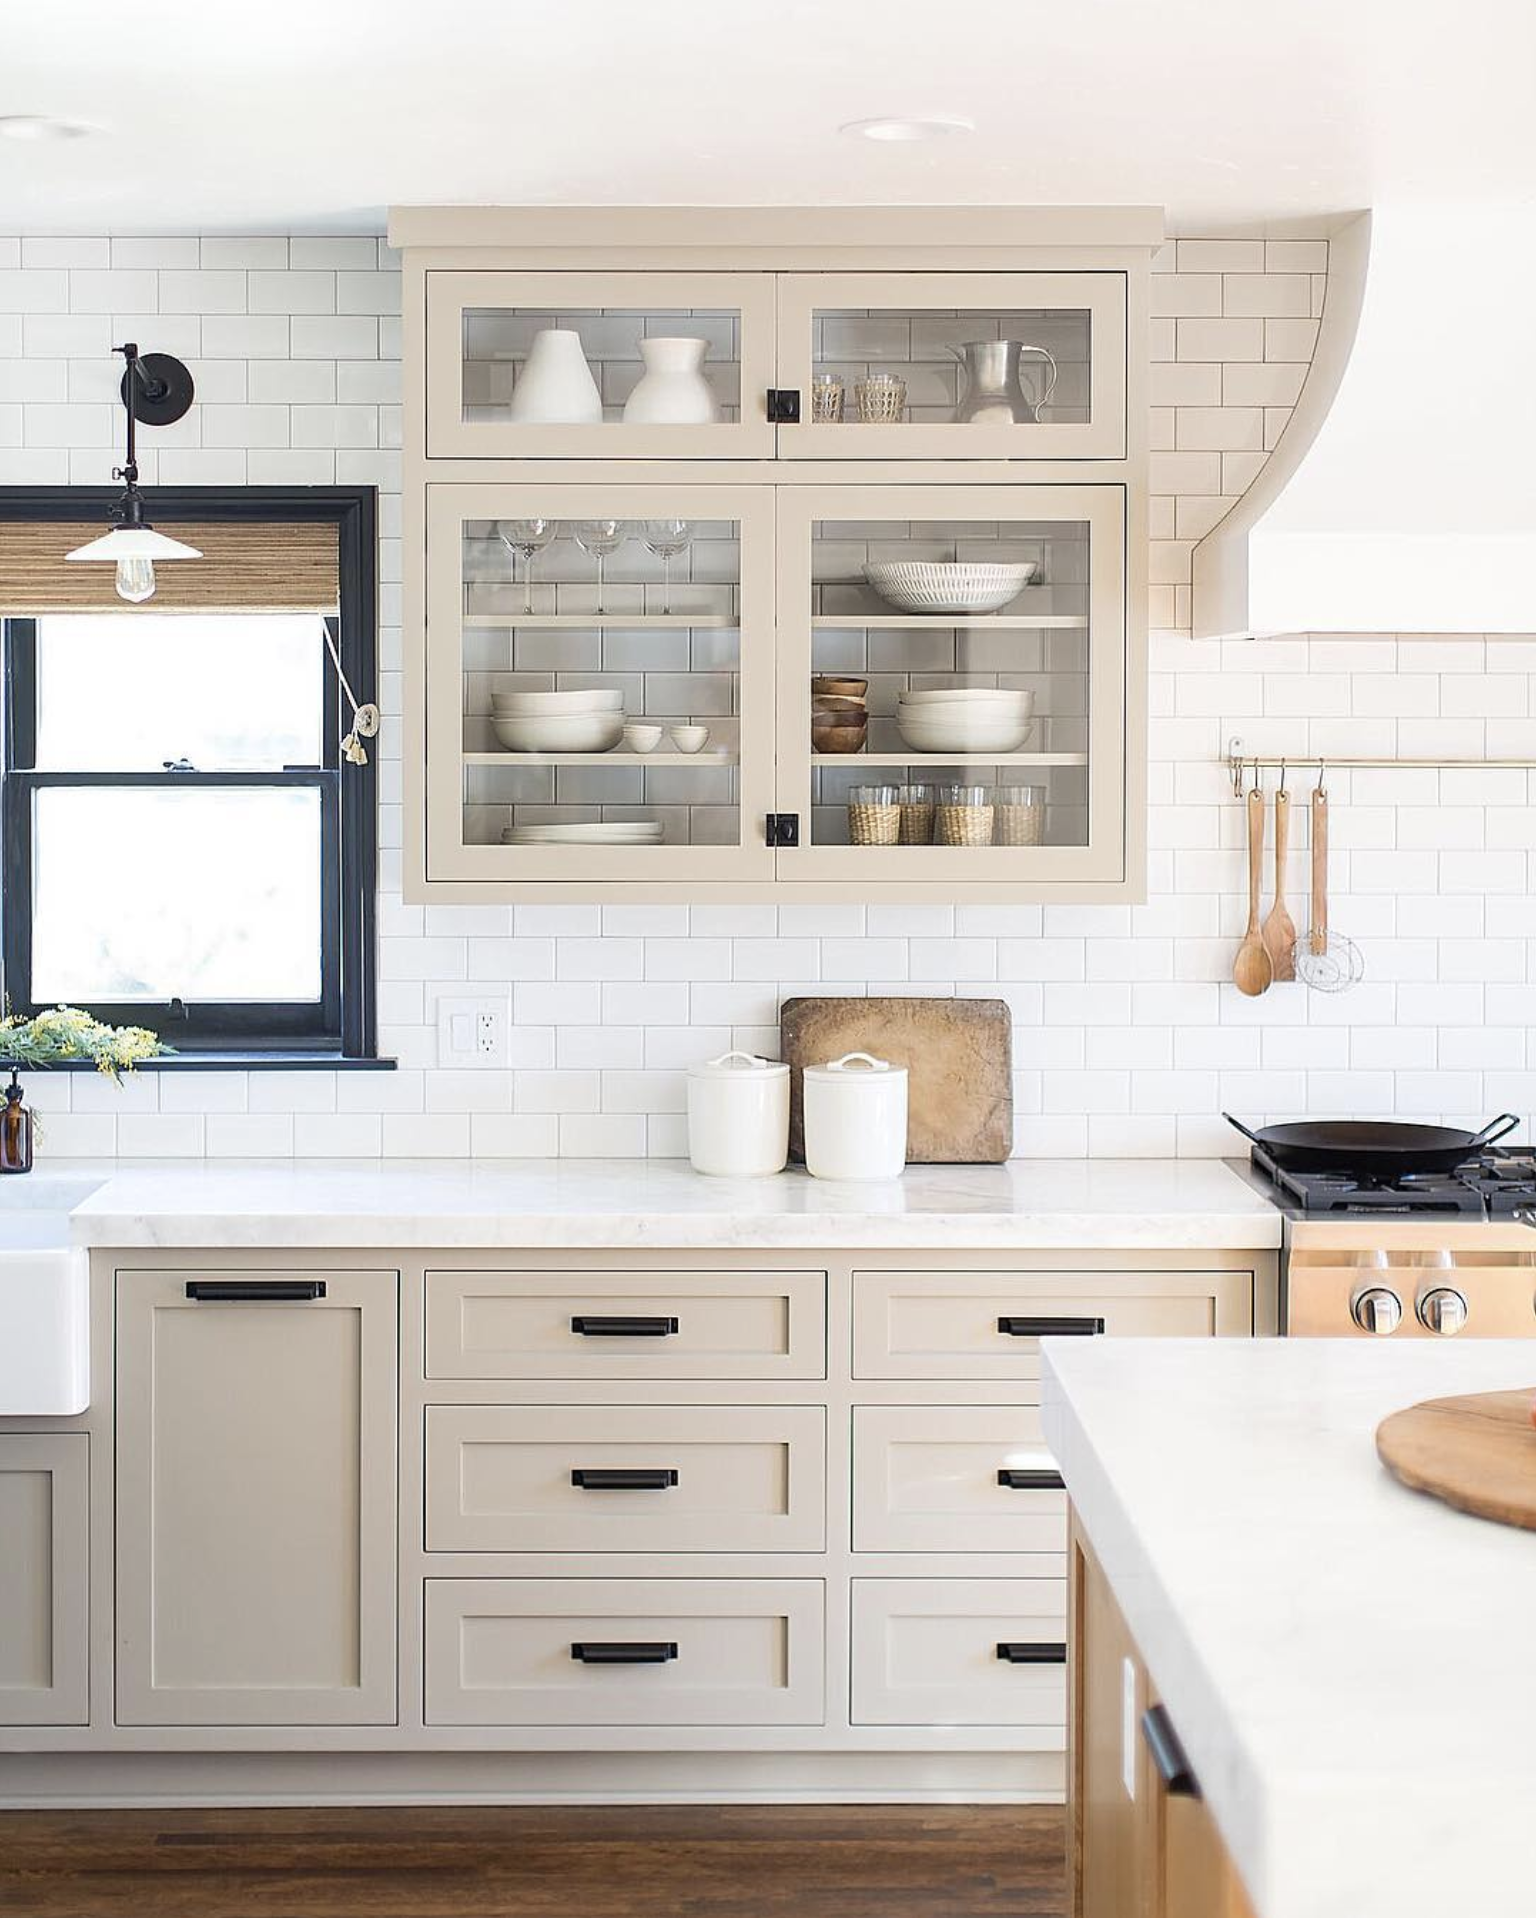 The Best Mushroom Paint Colors for Your Kitchen